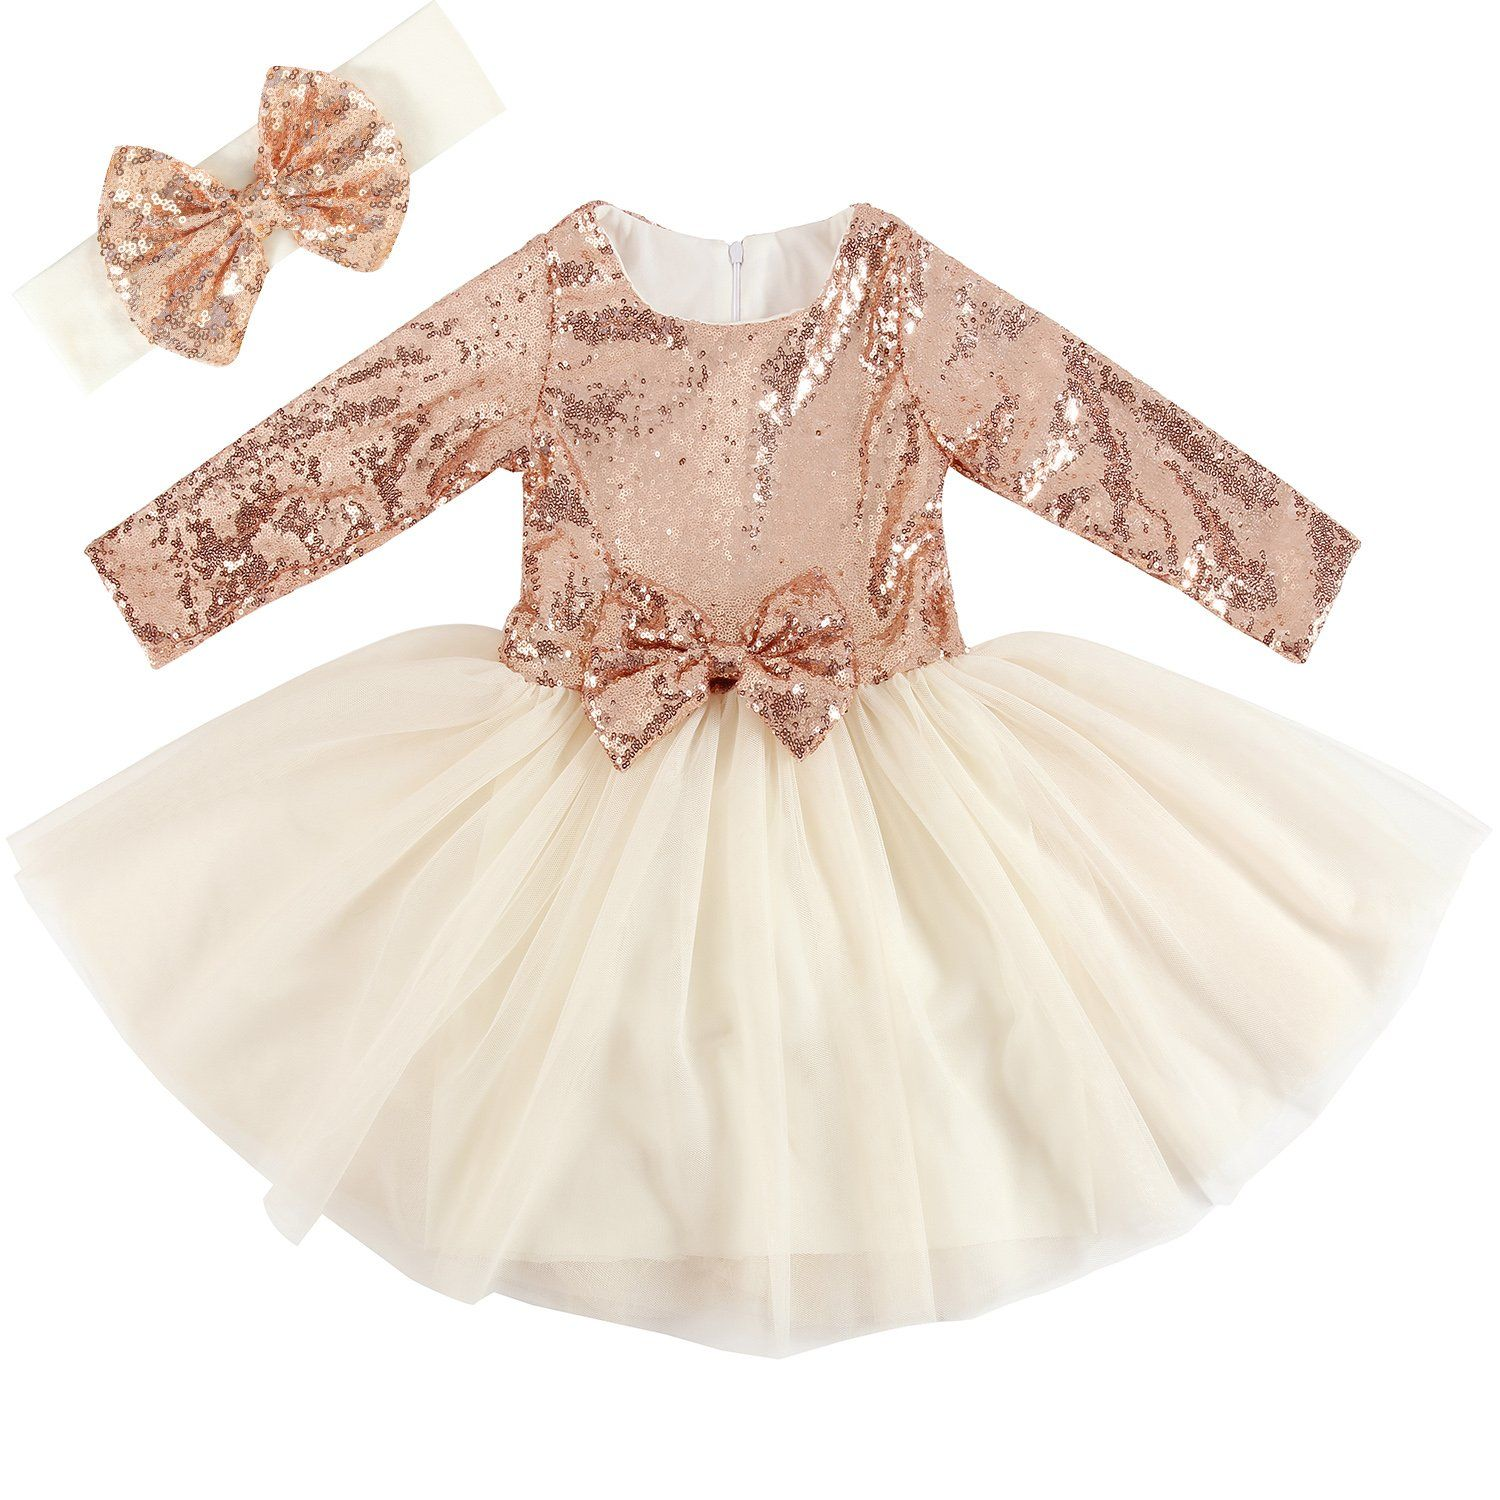 Cilucu flower girl dresses toddlers sequin party dress tutu prom